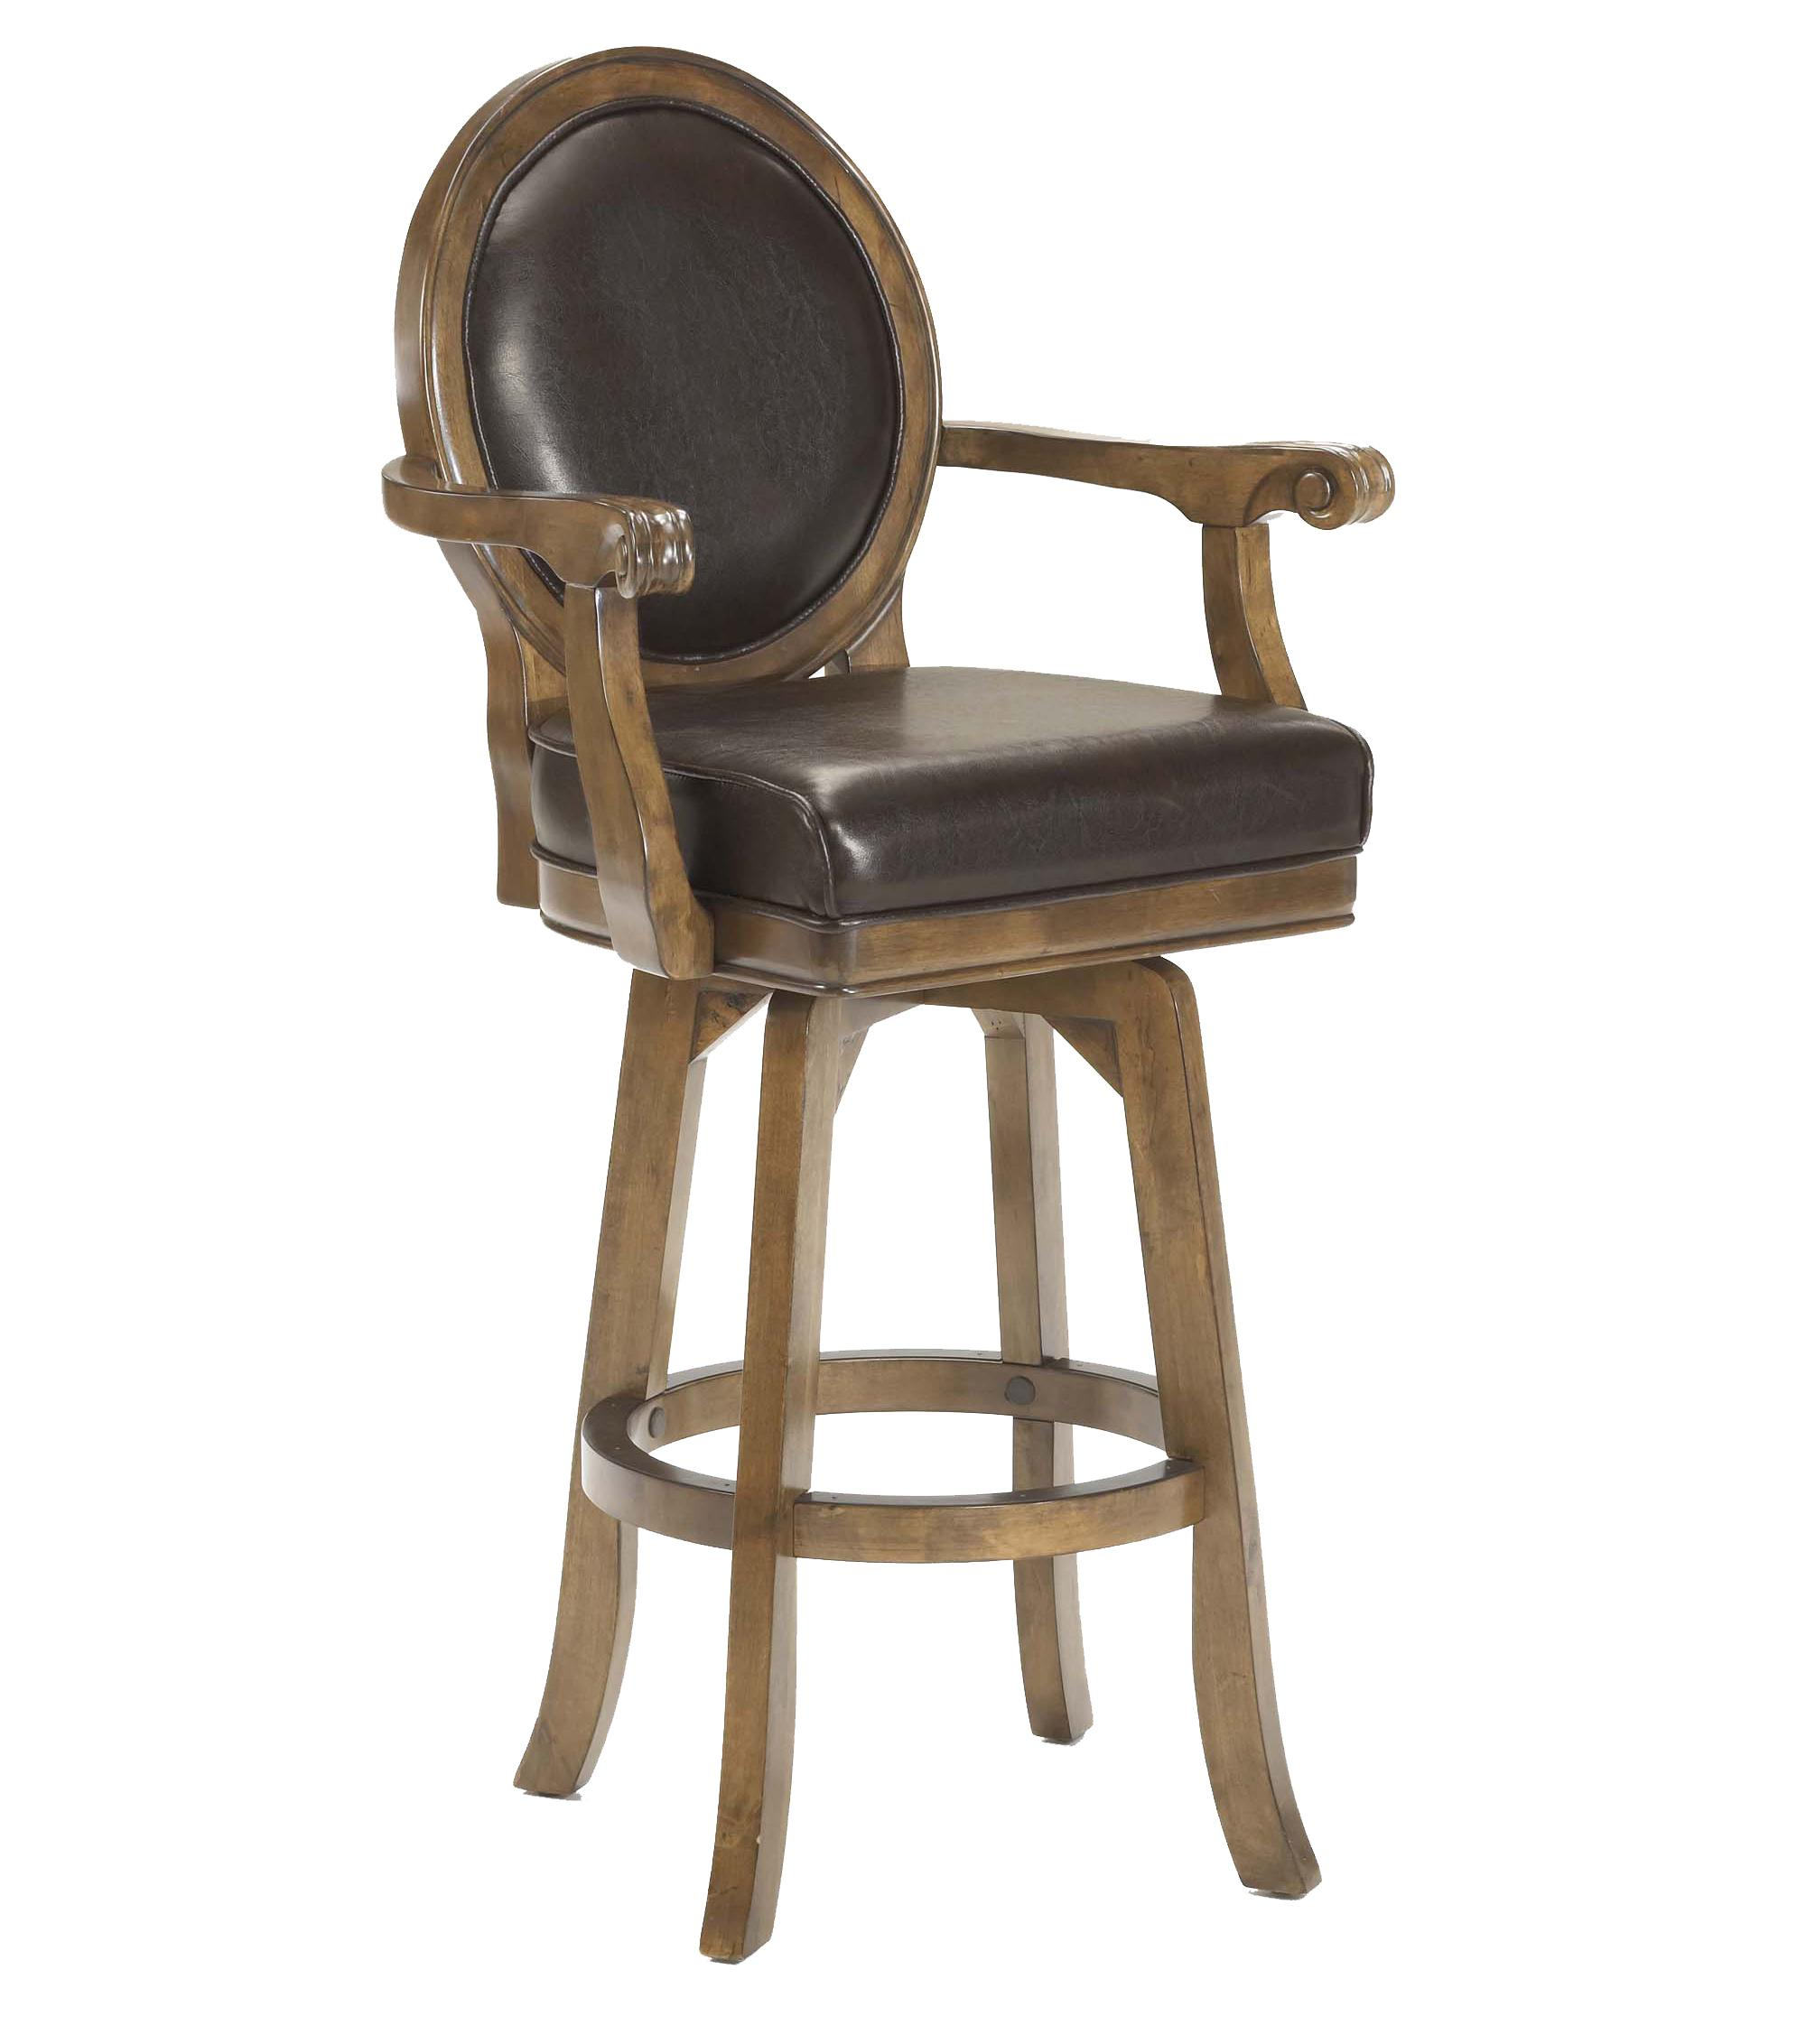 Hillsdale Game Stools & Chairs Warrington Swivel Bar Stool - Item Number: 6125-830